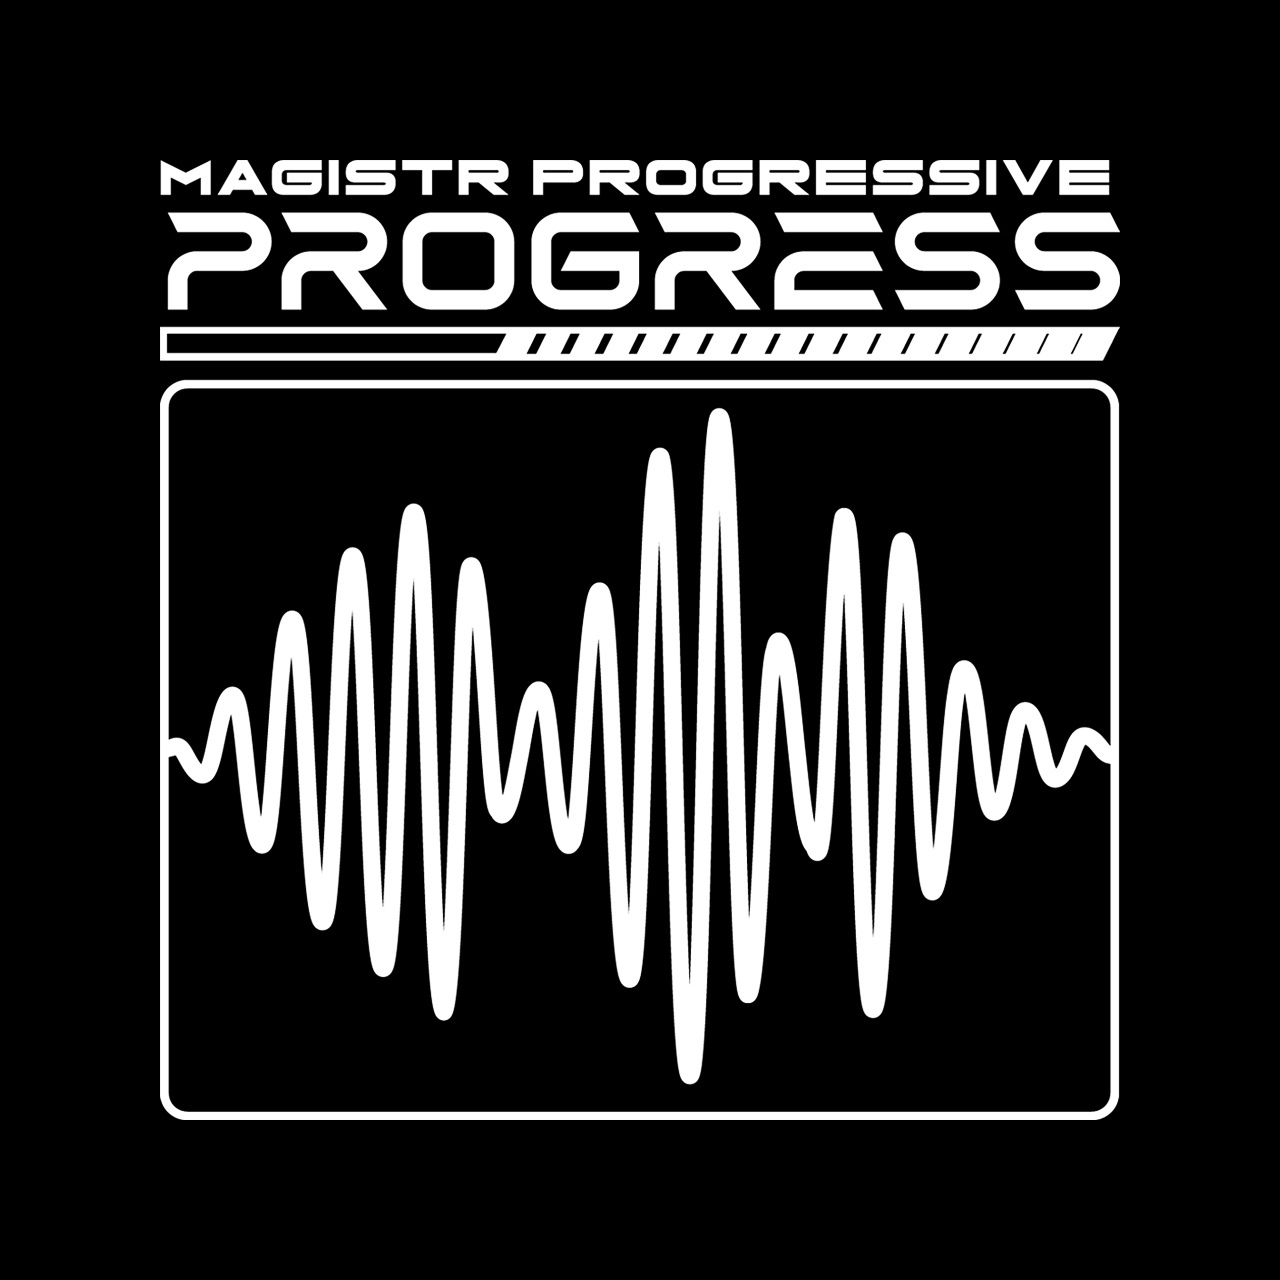 Progress by Magistr Progressive